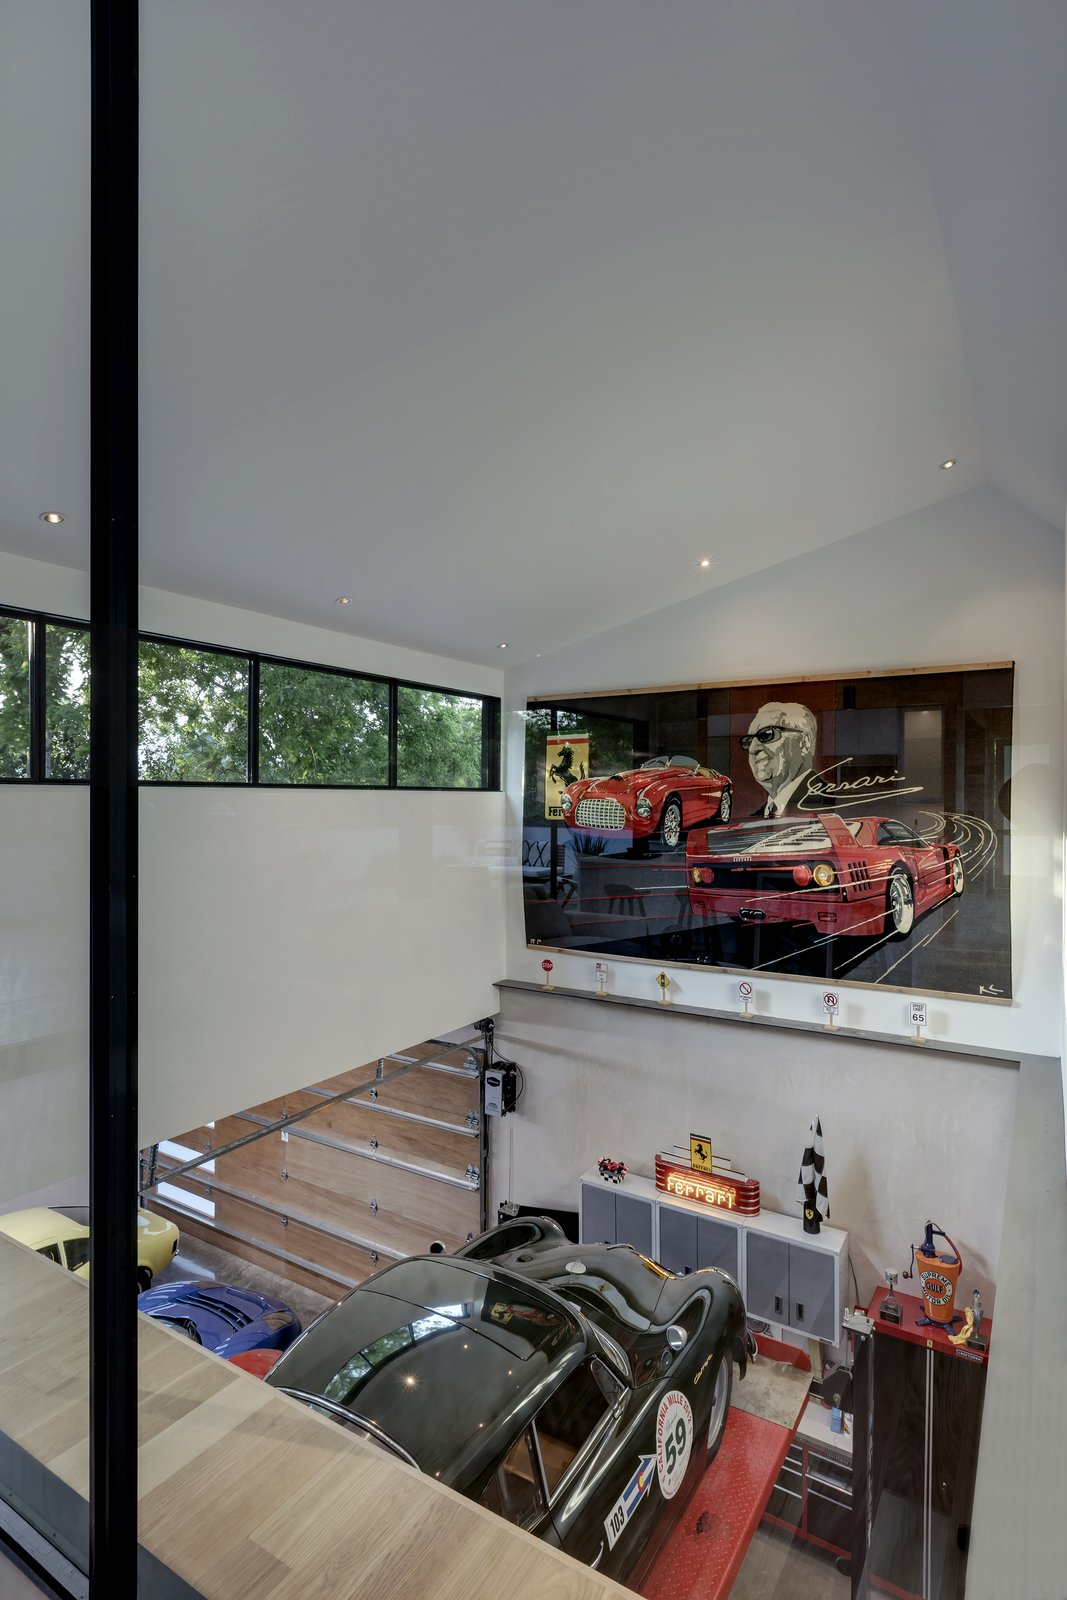 Garage and Garage Conversion Room Type  Photo 9 of 21 in This Austin Home Was Designed to Showcase a Vintage Car Collection